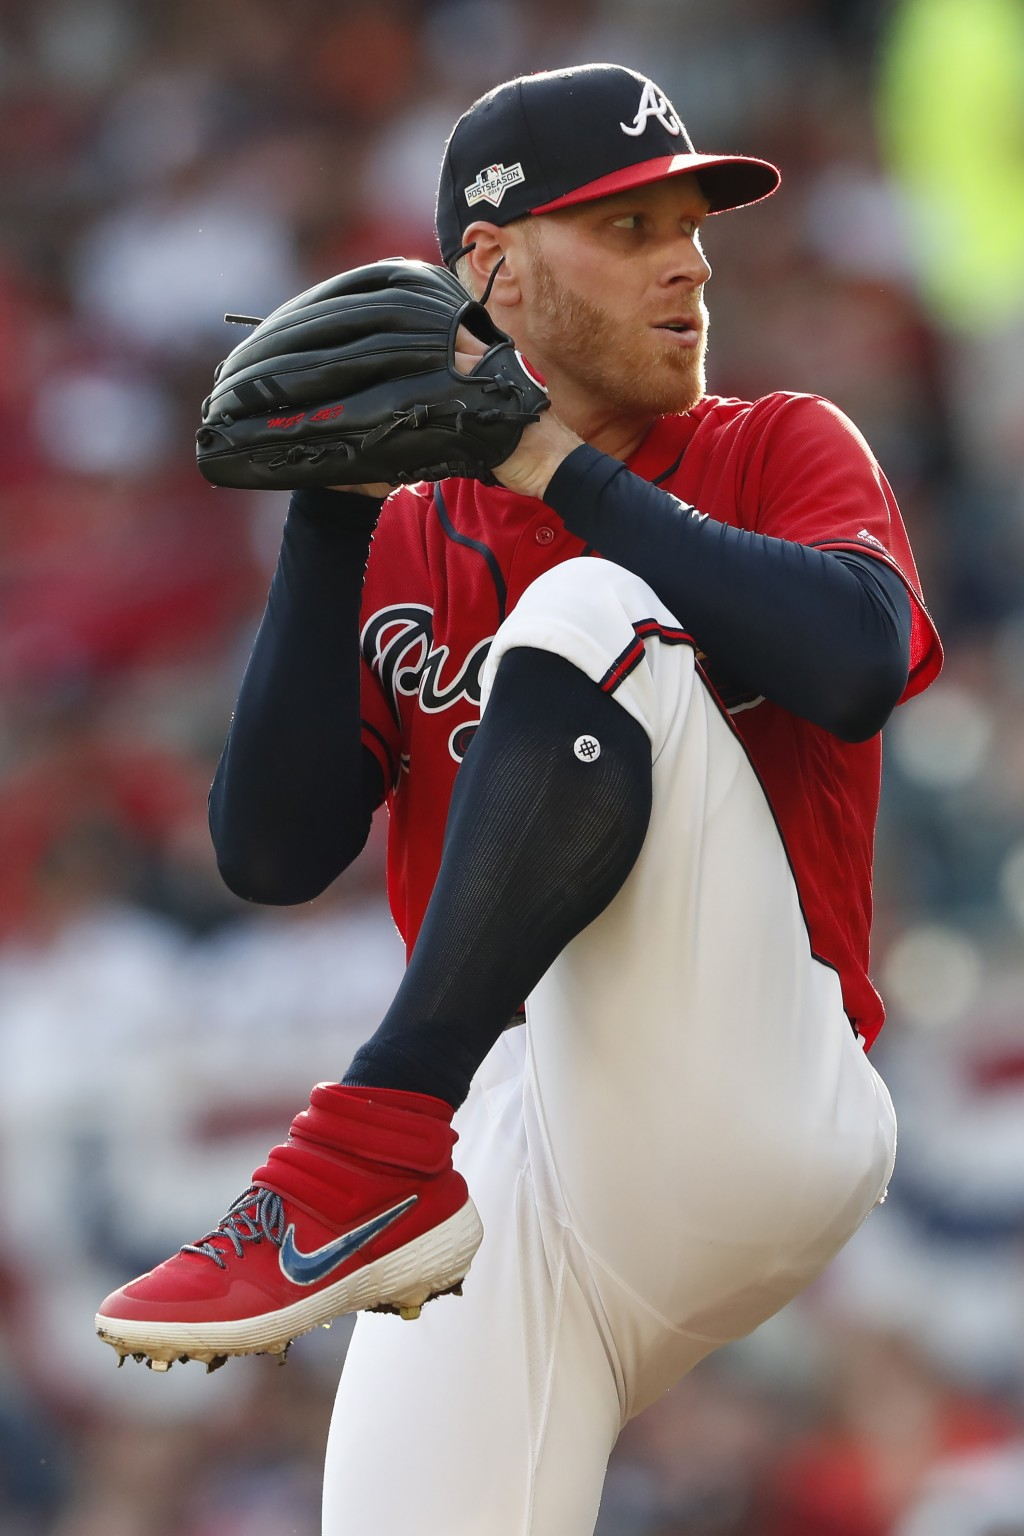 Atlanta Braves starting pitcher Mike Foltynewicz (26) works in the fifth inning during Game 2 of a best-of-five National League Division Series, Frida...